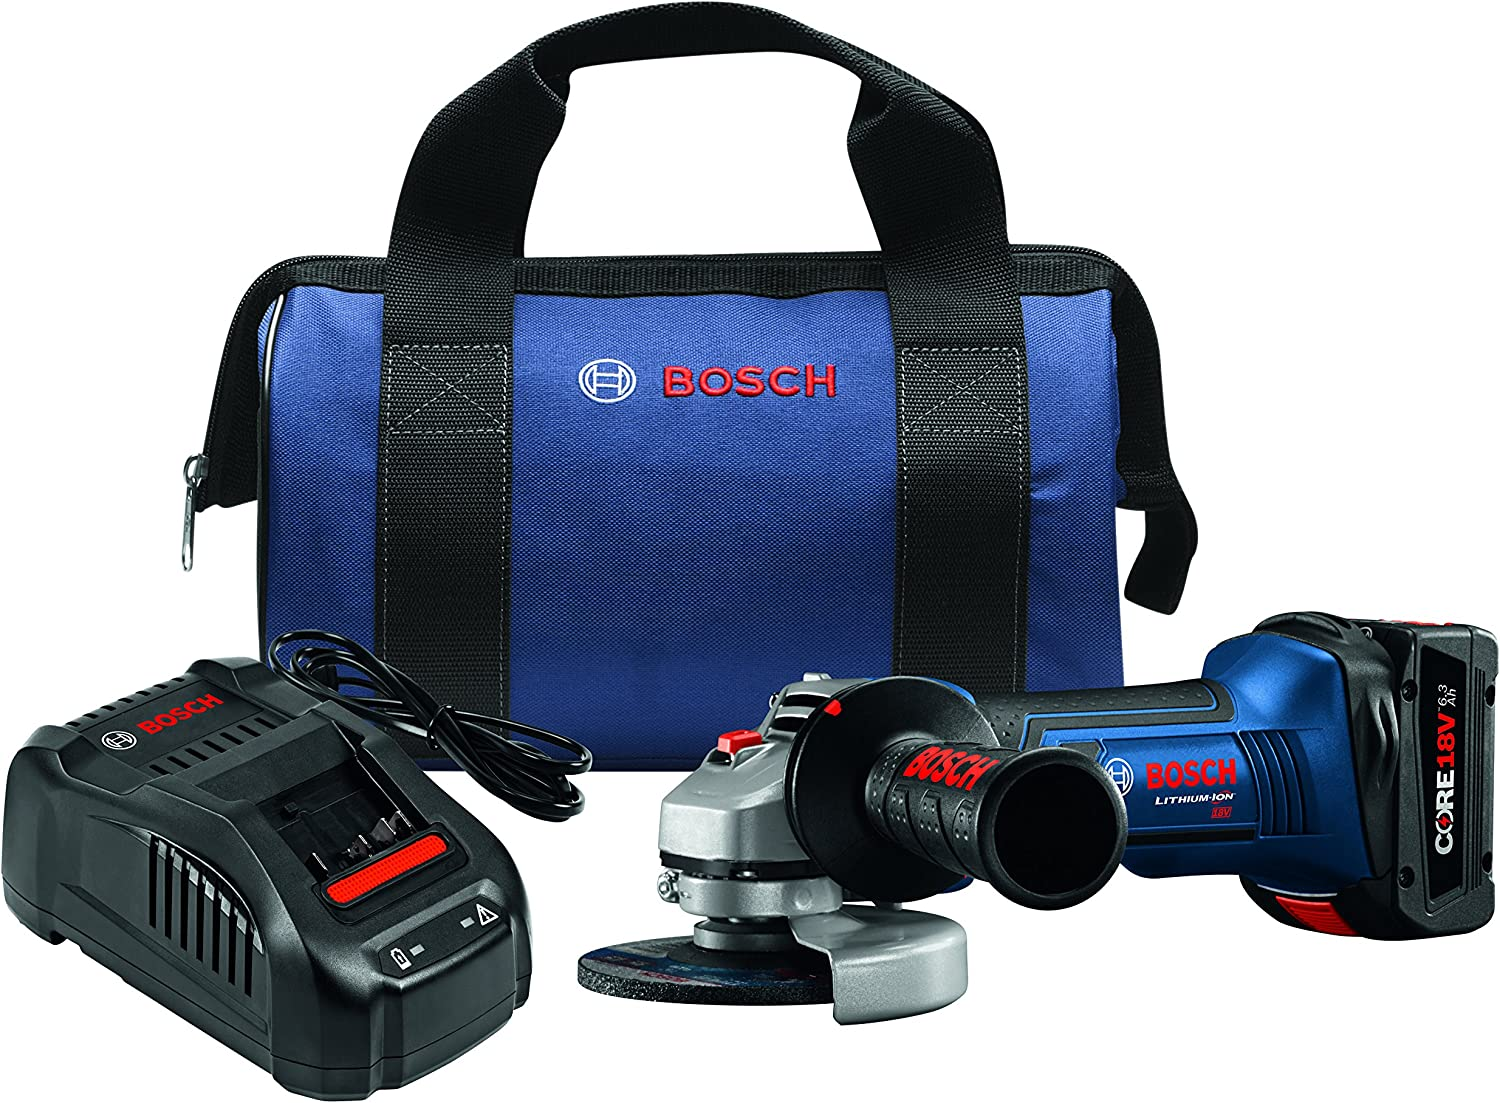 Bosch GWS18V-45B14 18V 4-1 2 Angle Grinder Kit with CORE18V Battery, Blue